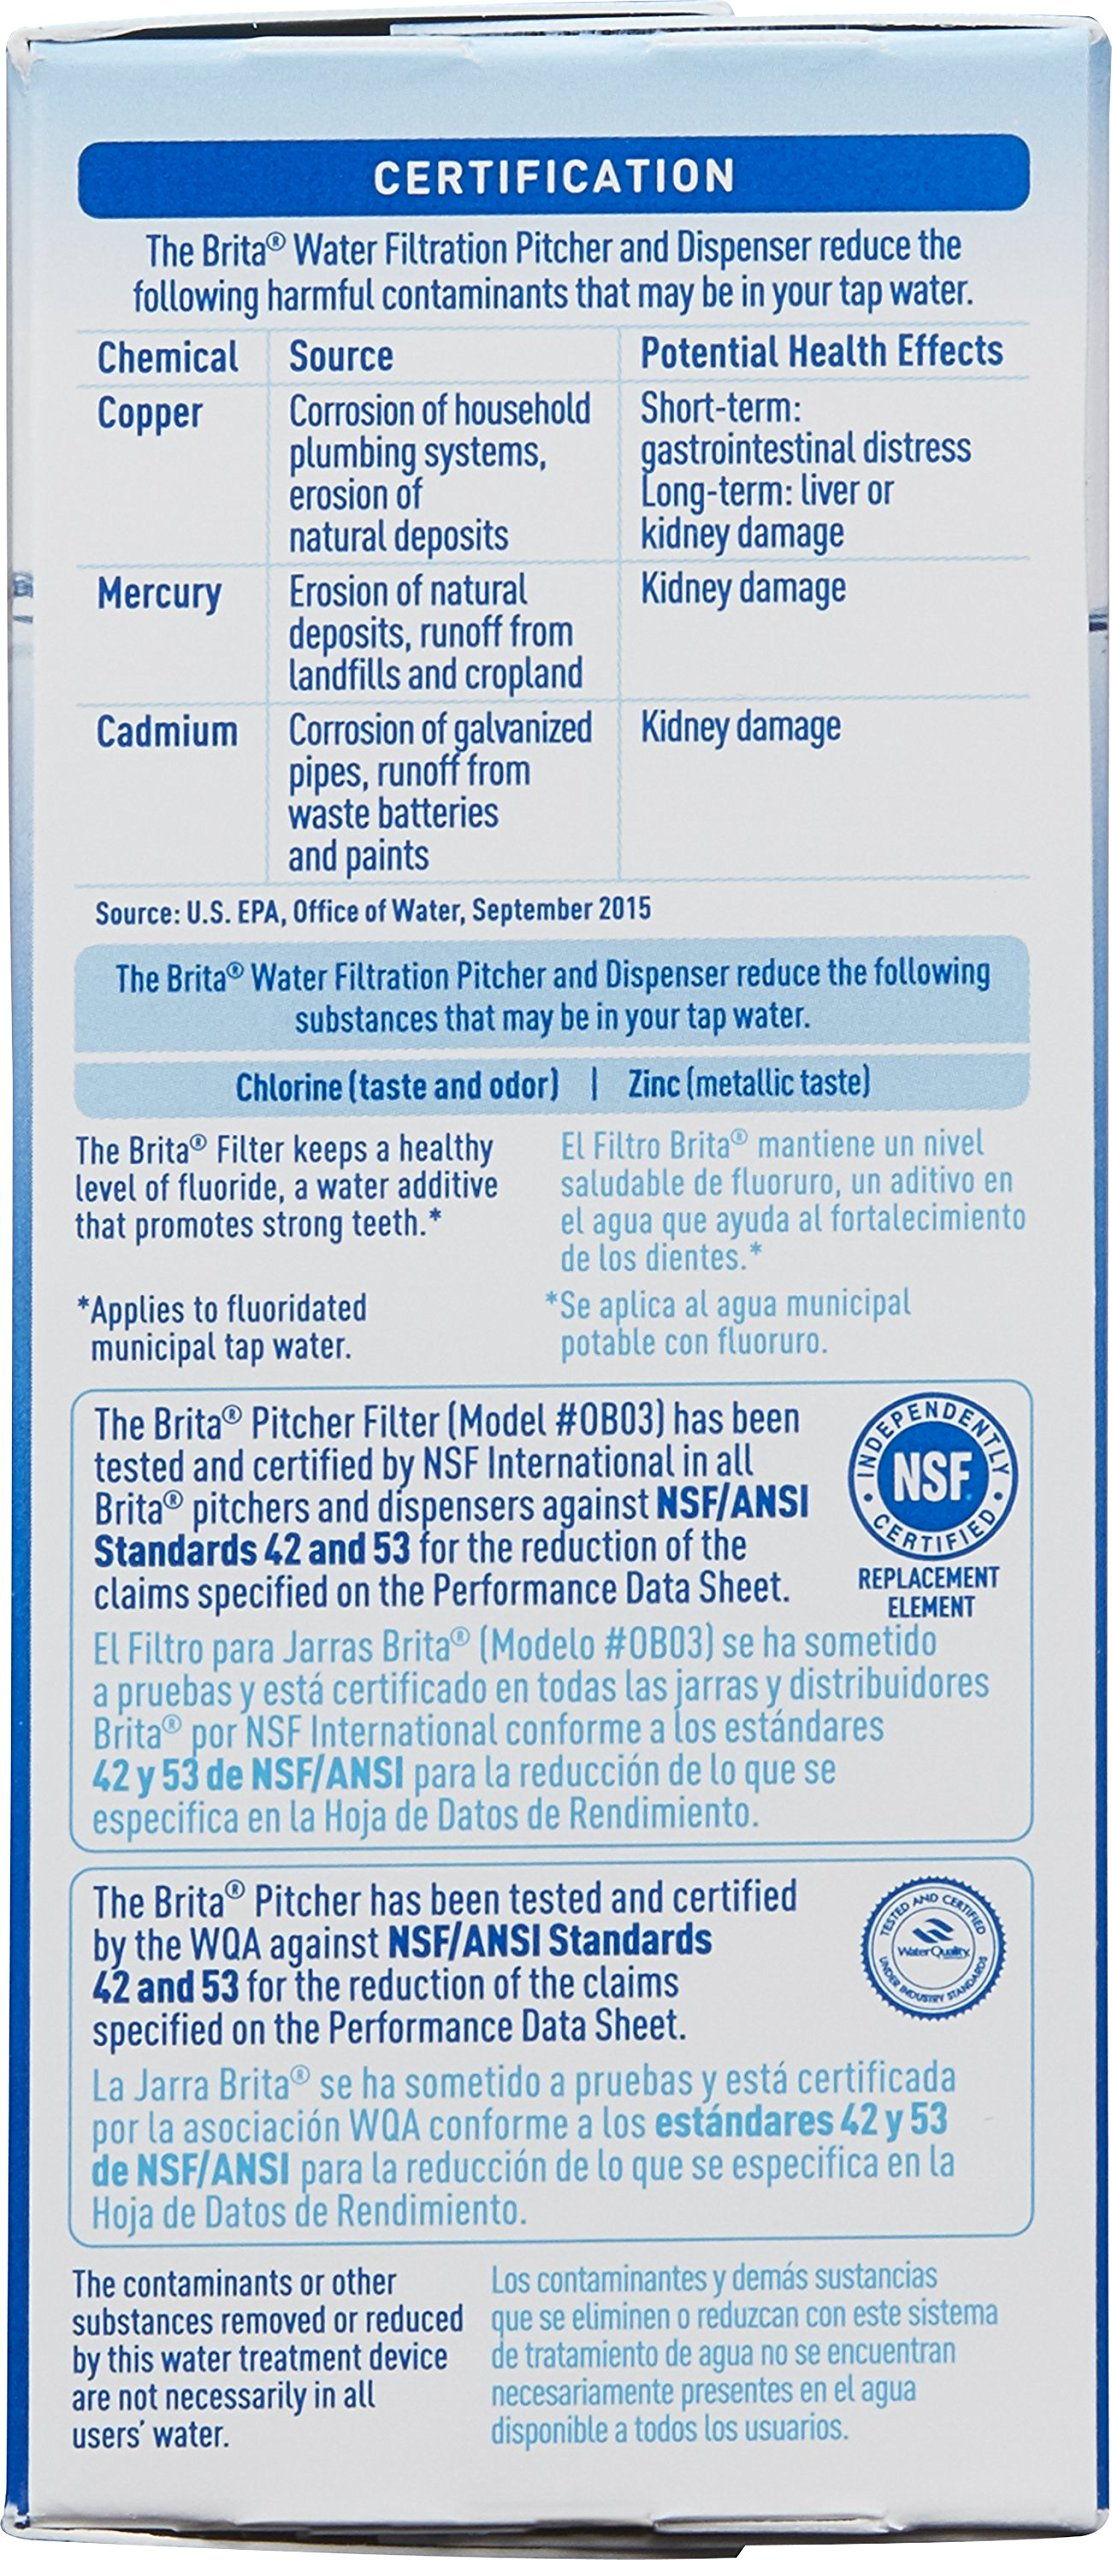 Brita Standard Replacement Filters for Pitchers and Dispensers - BPA Free - 5 Count by Brita (Image #5)